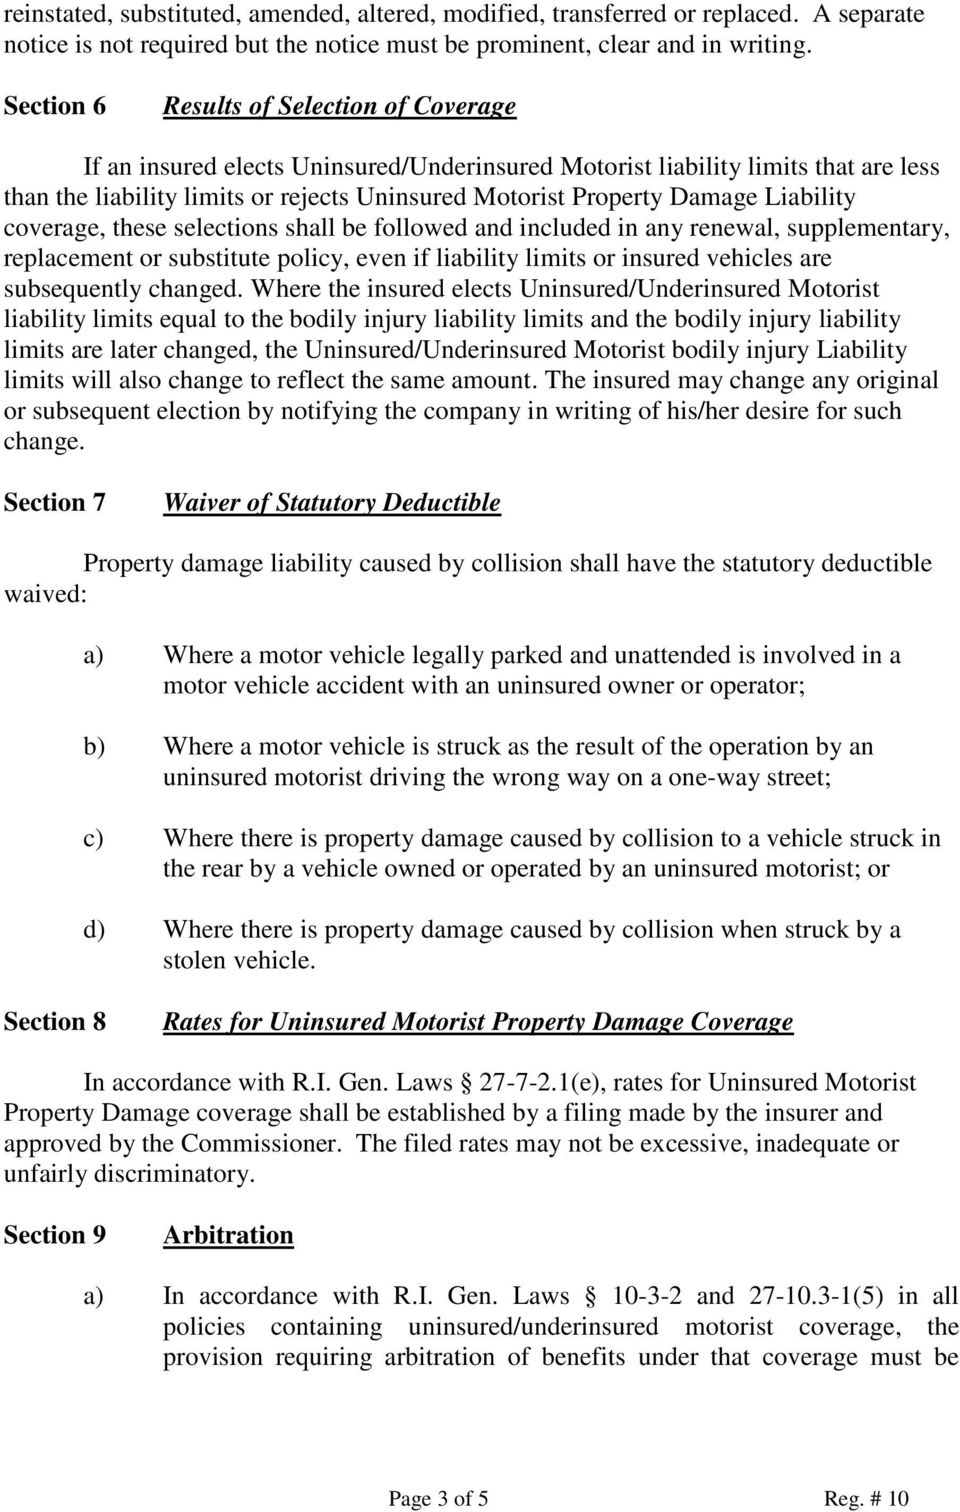 Liability coverage, these selections shall be followed and included in any renewal, supplementary, replacement or substitute policy, even if liability limits or insured vehicles are subsequently